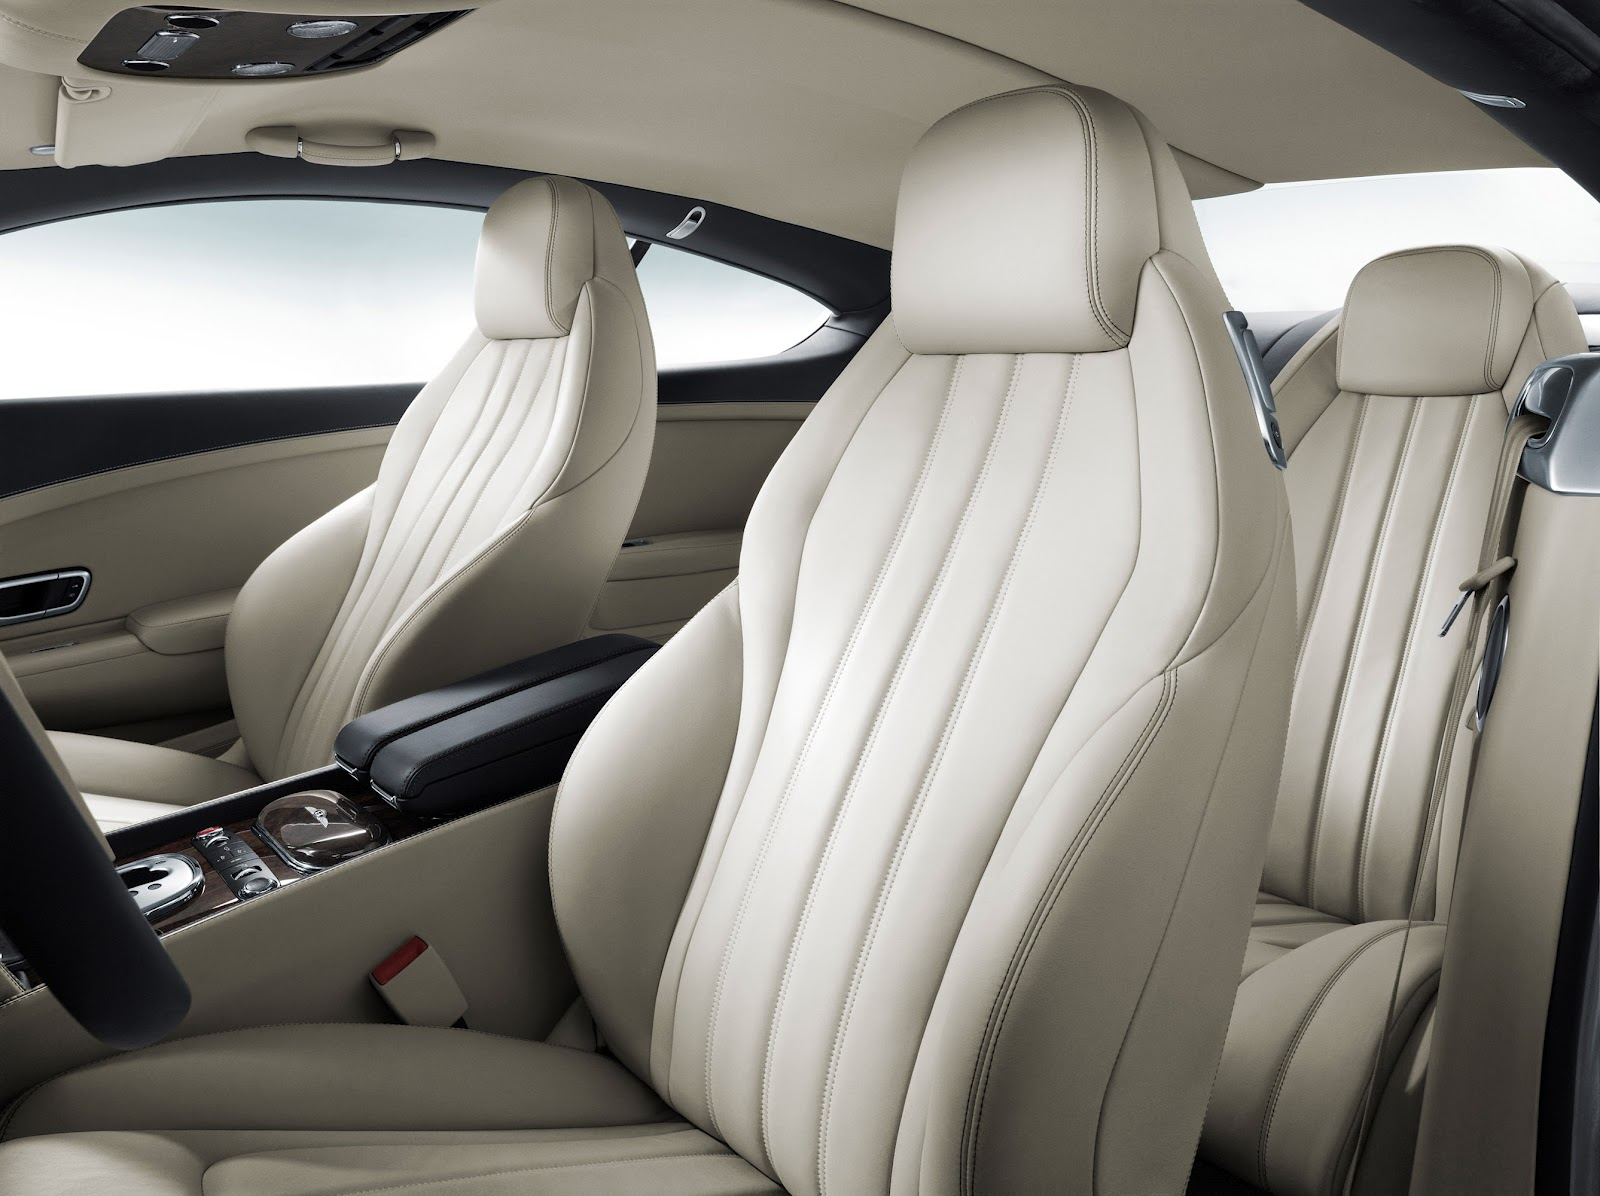 2013 Bentley GTC Seats